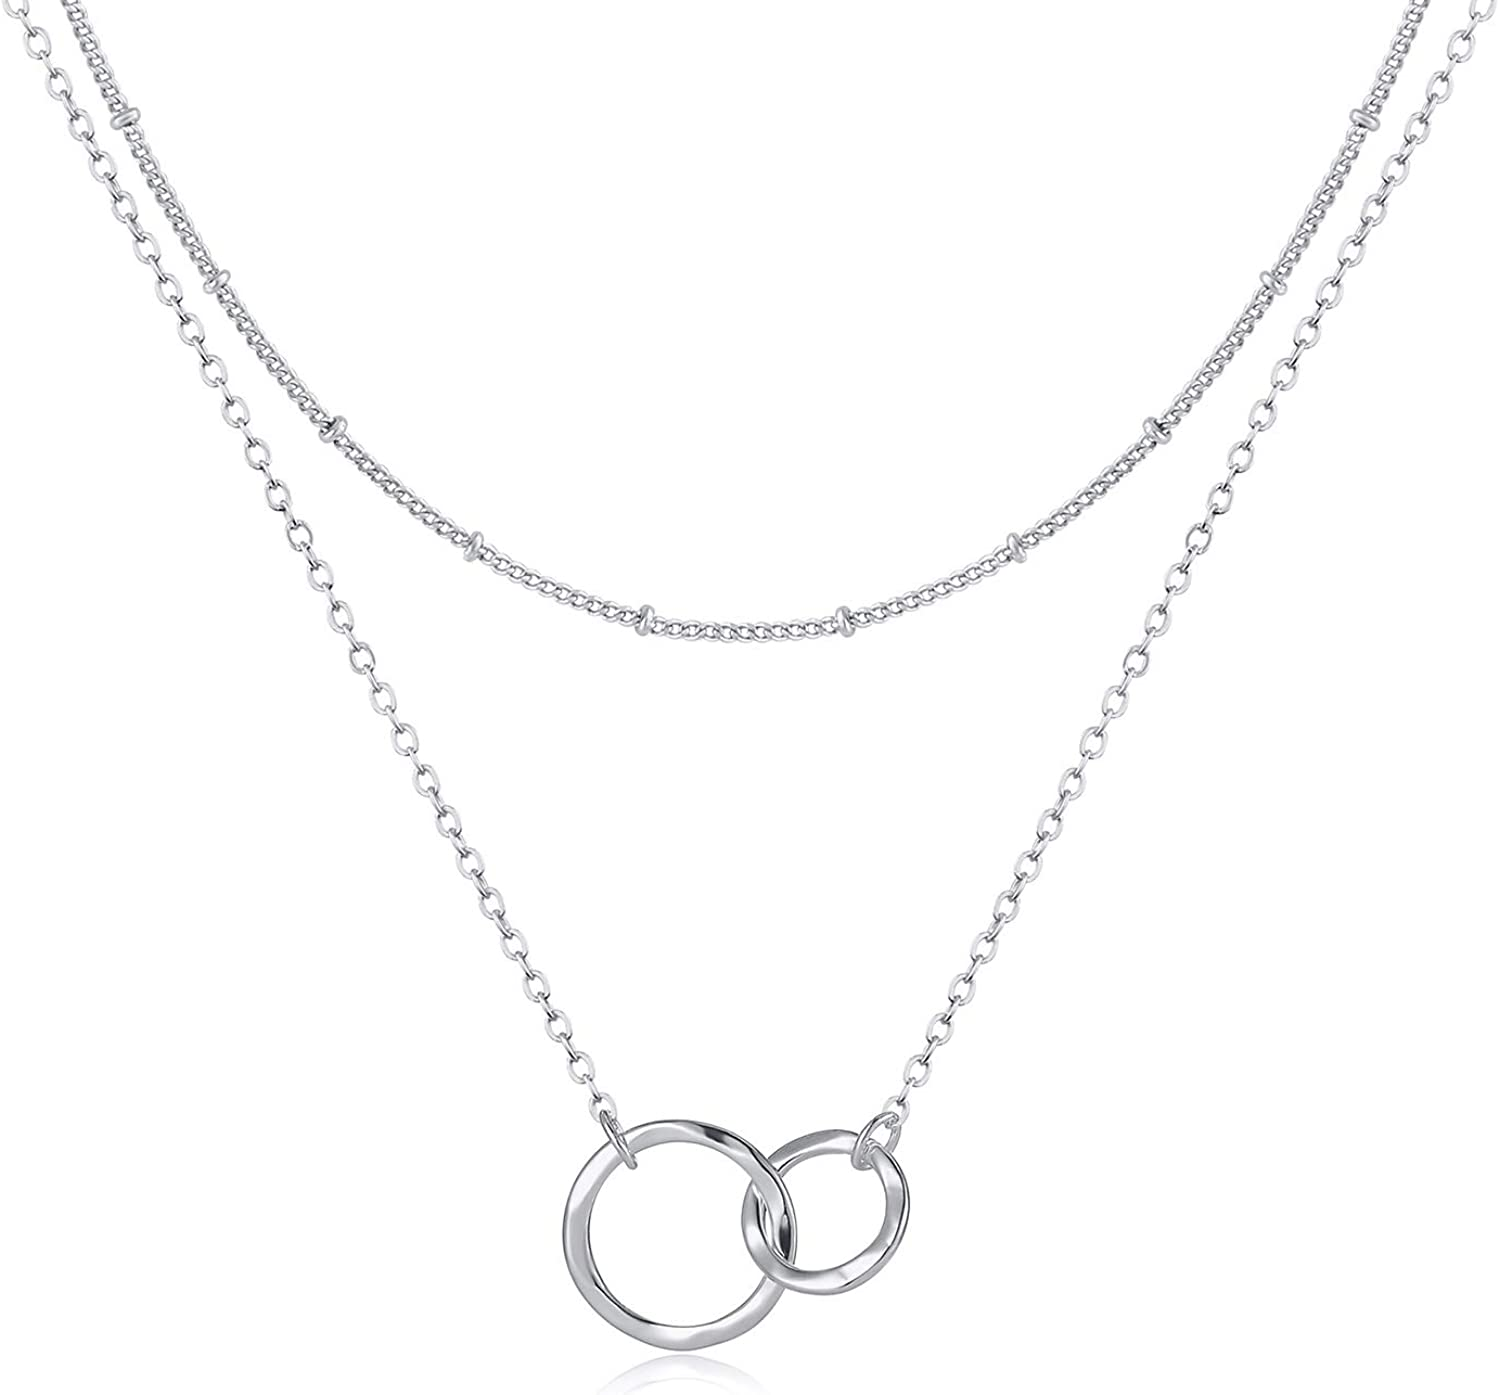 Fettero Layered Necklace OFFicial Jacksonville Mall store Double Circle Interlocking Generations